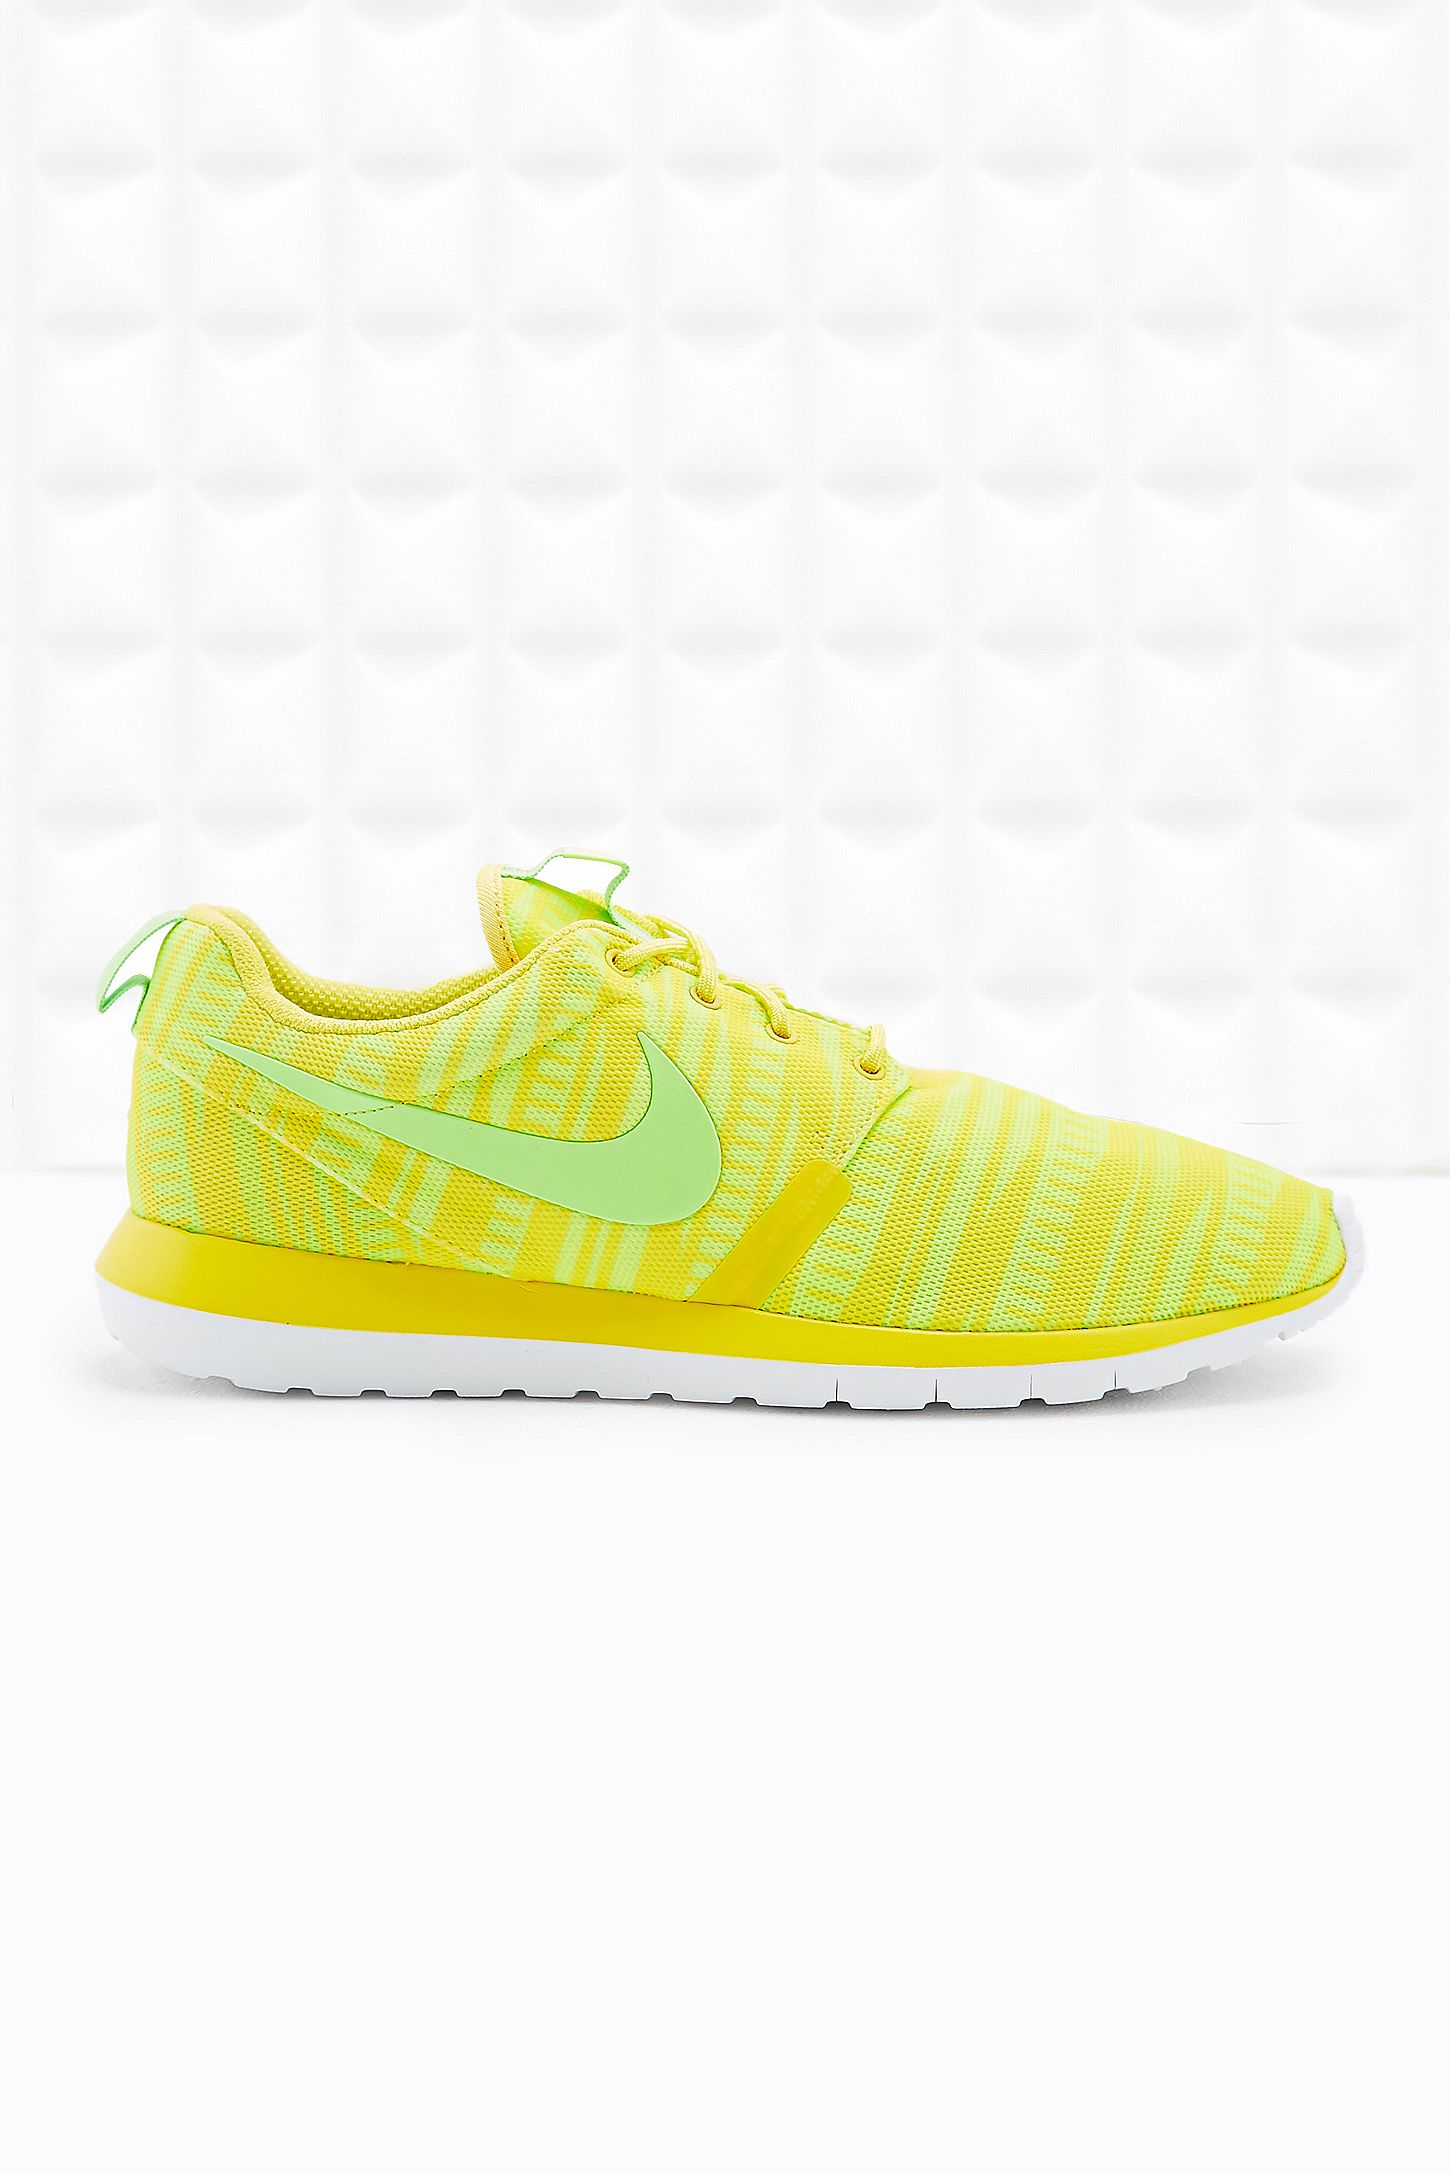 bf9cedd5891b Nike Roshe Run Essential Summer Trainers in Yellow. Click on image to zoom.  Hover to zoom. Double Tap to Zoom